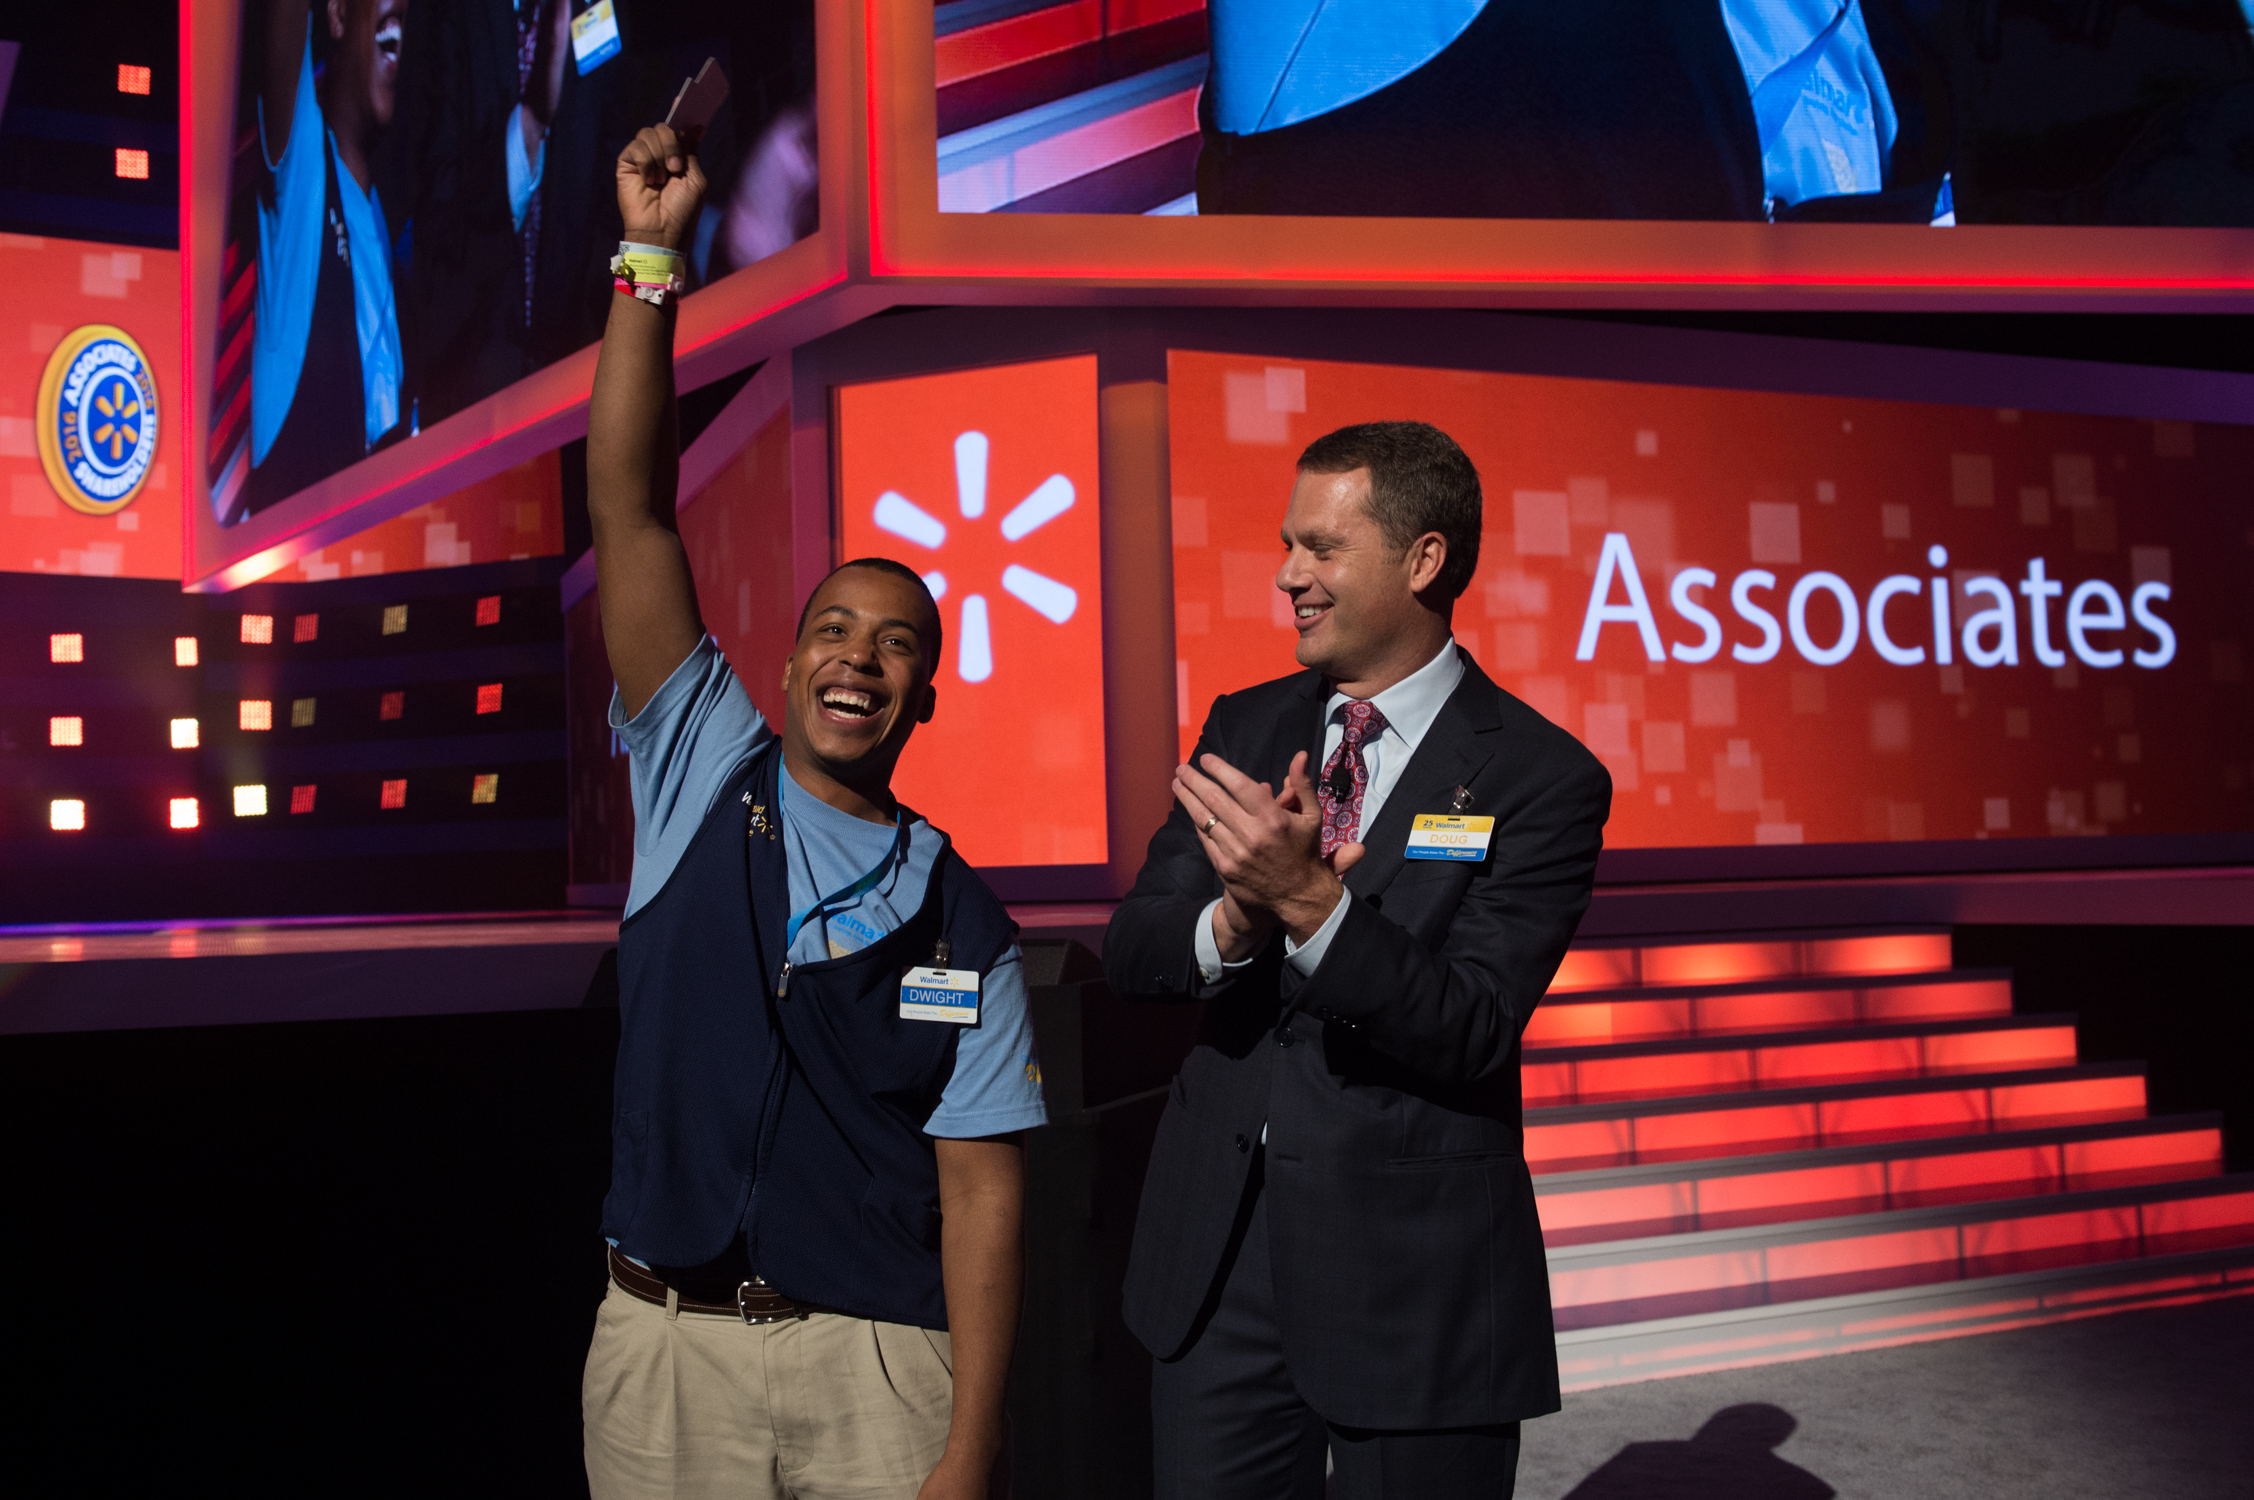 Associate Dwight celebrates being promoted to Assistant Manager by Doug McMillon